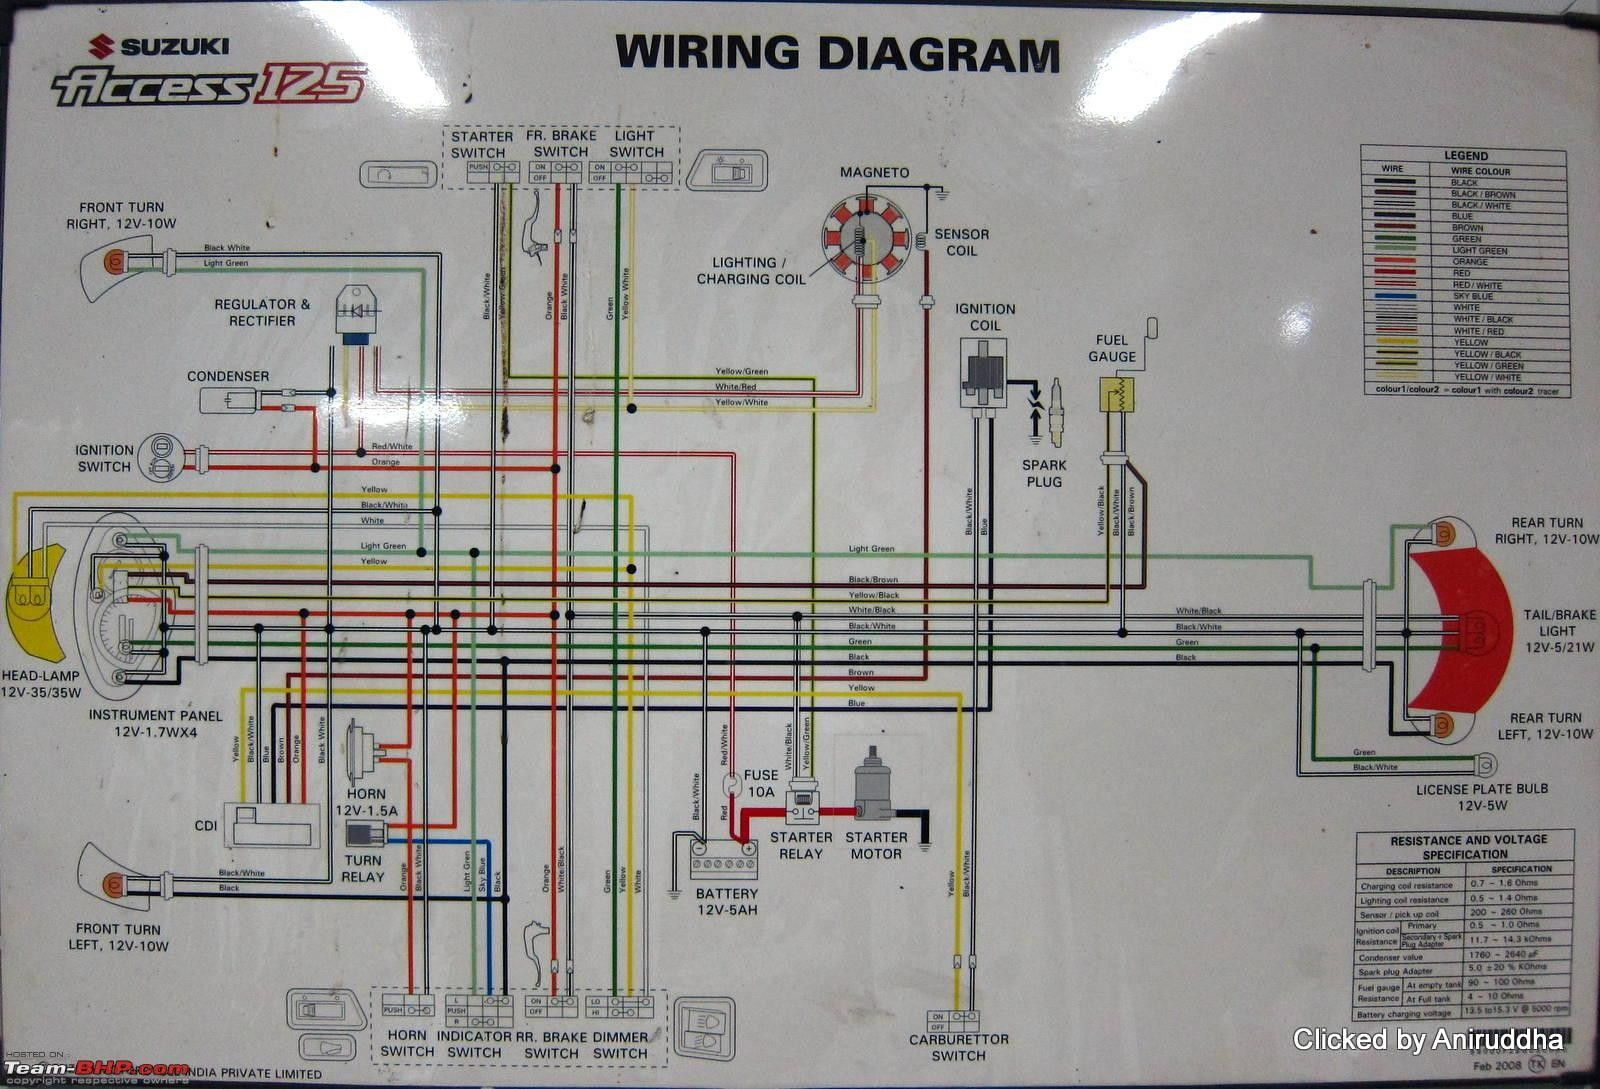 Suzuki access 125 wiring diagram | Motorcycle wiring, Electrical wiring  diagram, WirePinterest